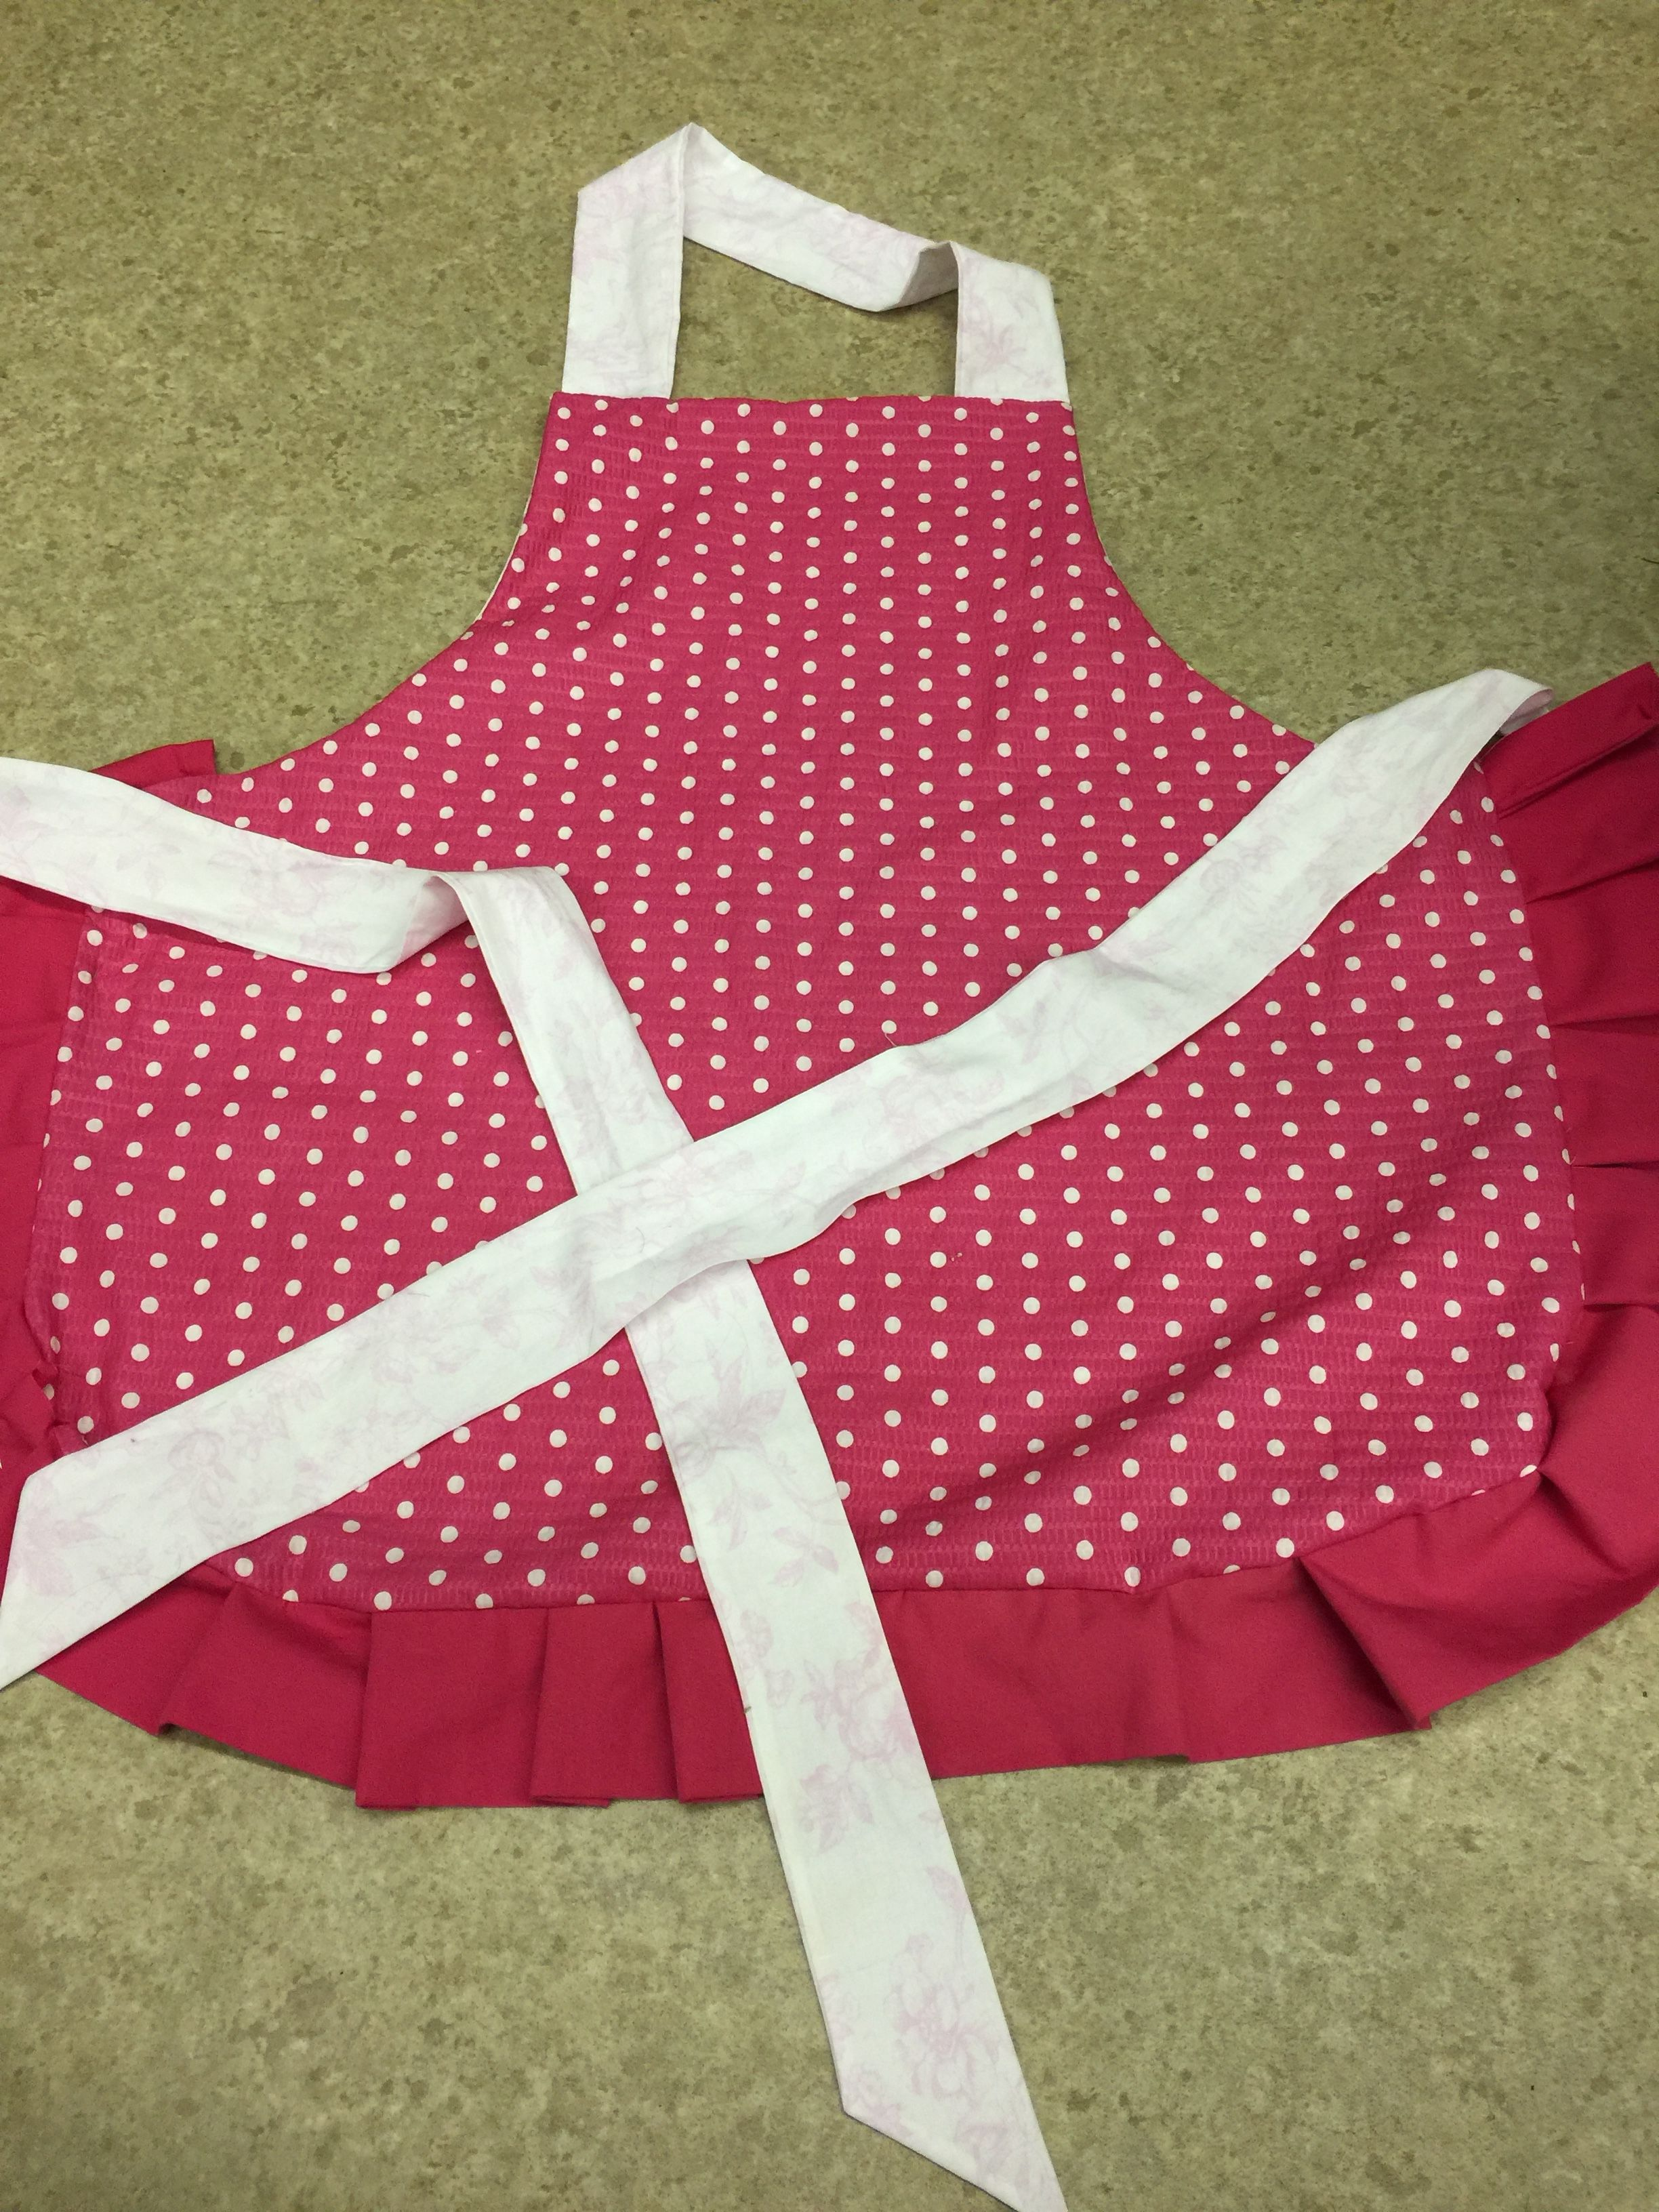 Apron with Ruffles